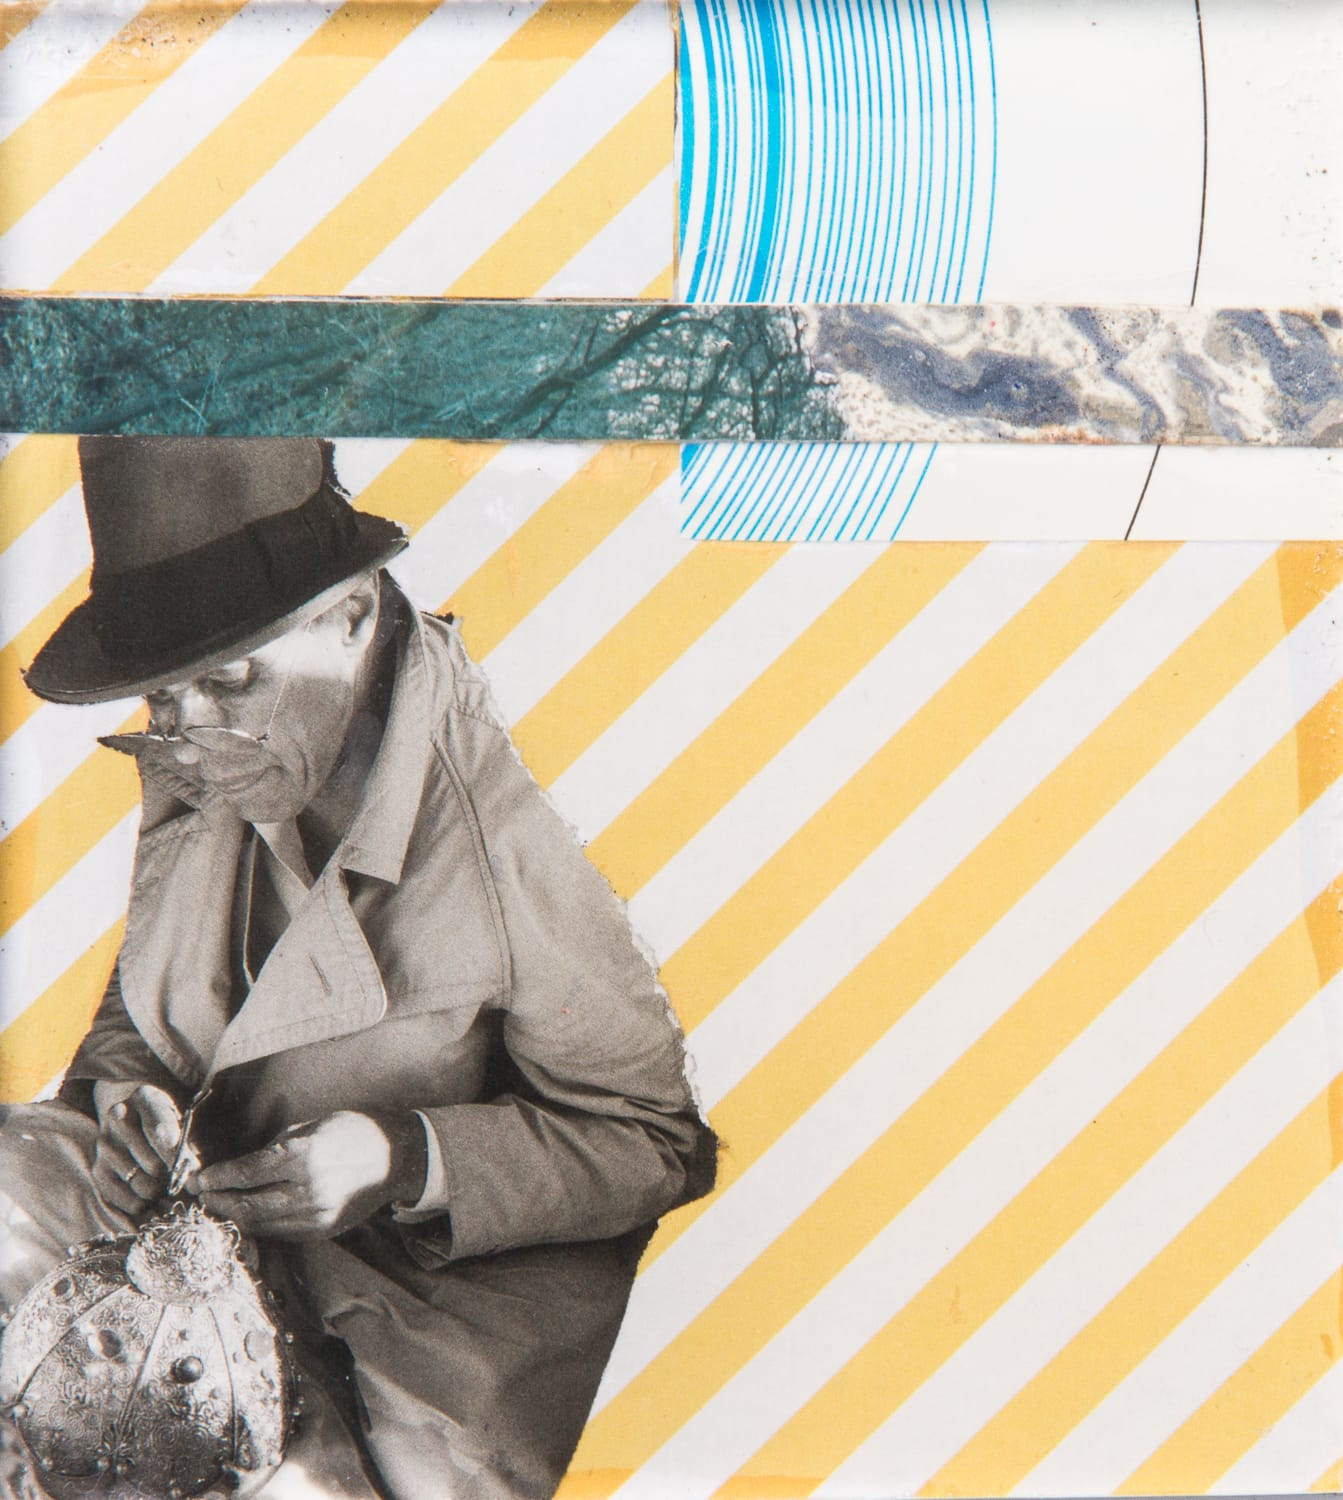 Beuys. Collage on acrylic, magnet, 10 x 11 cm, 2018